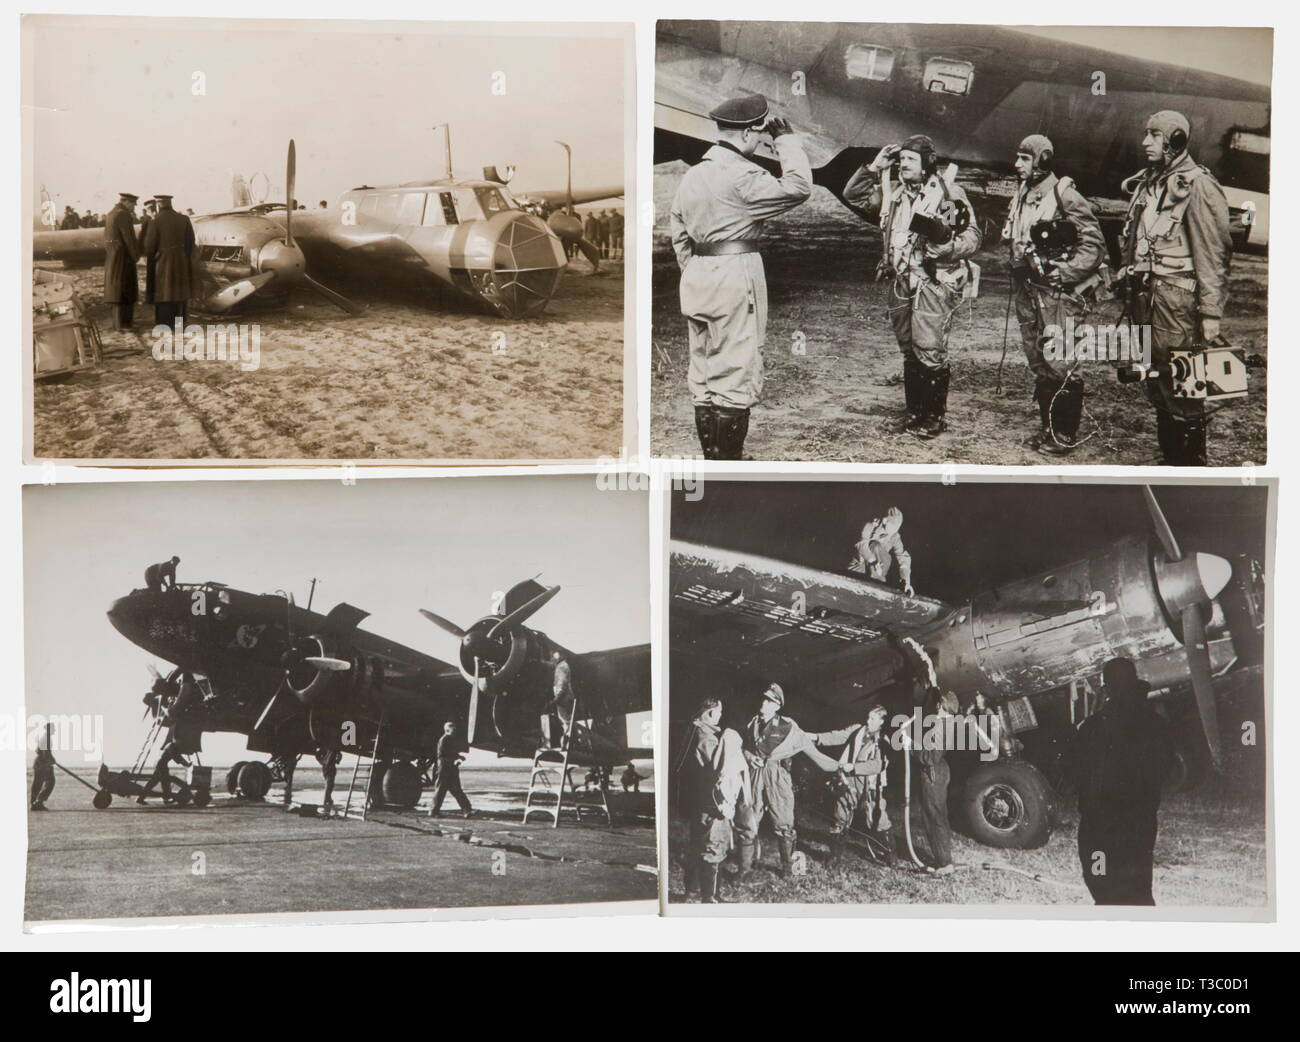 Circa 100 press photos, of aircraft In various formats, from German and foreign press agencies, mostly inscribed on the back. Depicted are the Hs 123, He 111, Ju 87, Ju 88, Do 17, and Fw 200 on the ground and in flight, control room work, interior and exterior views with crews, group photos, night attacks and much more. historic, historical, people, 1930s, 20th century, Air Force, branch of service, branches of service, armed service, armed services, military, militaria, air forces, object, objects, stills, clipping, clippings, cut out, cut-out, cut-outs, photograph, photo,, Editorial-Use-Only - Stock Image